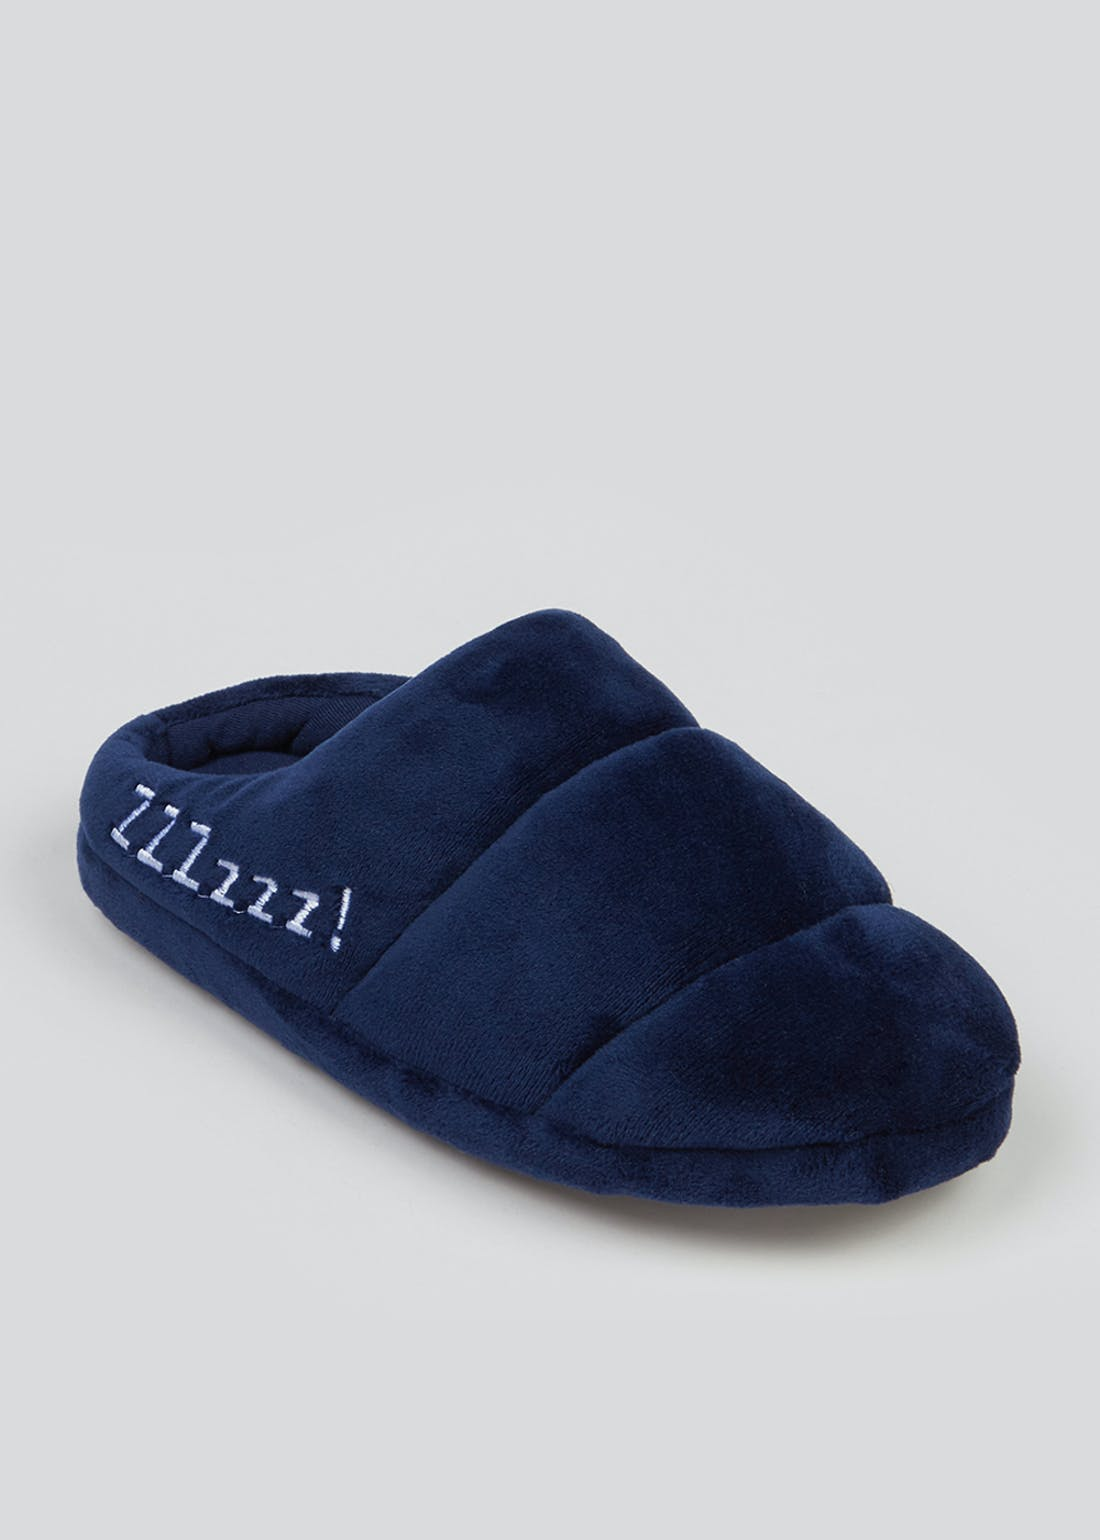 Boys Navy Mule Slippers (Younger 10-Older 6)